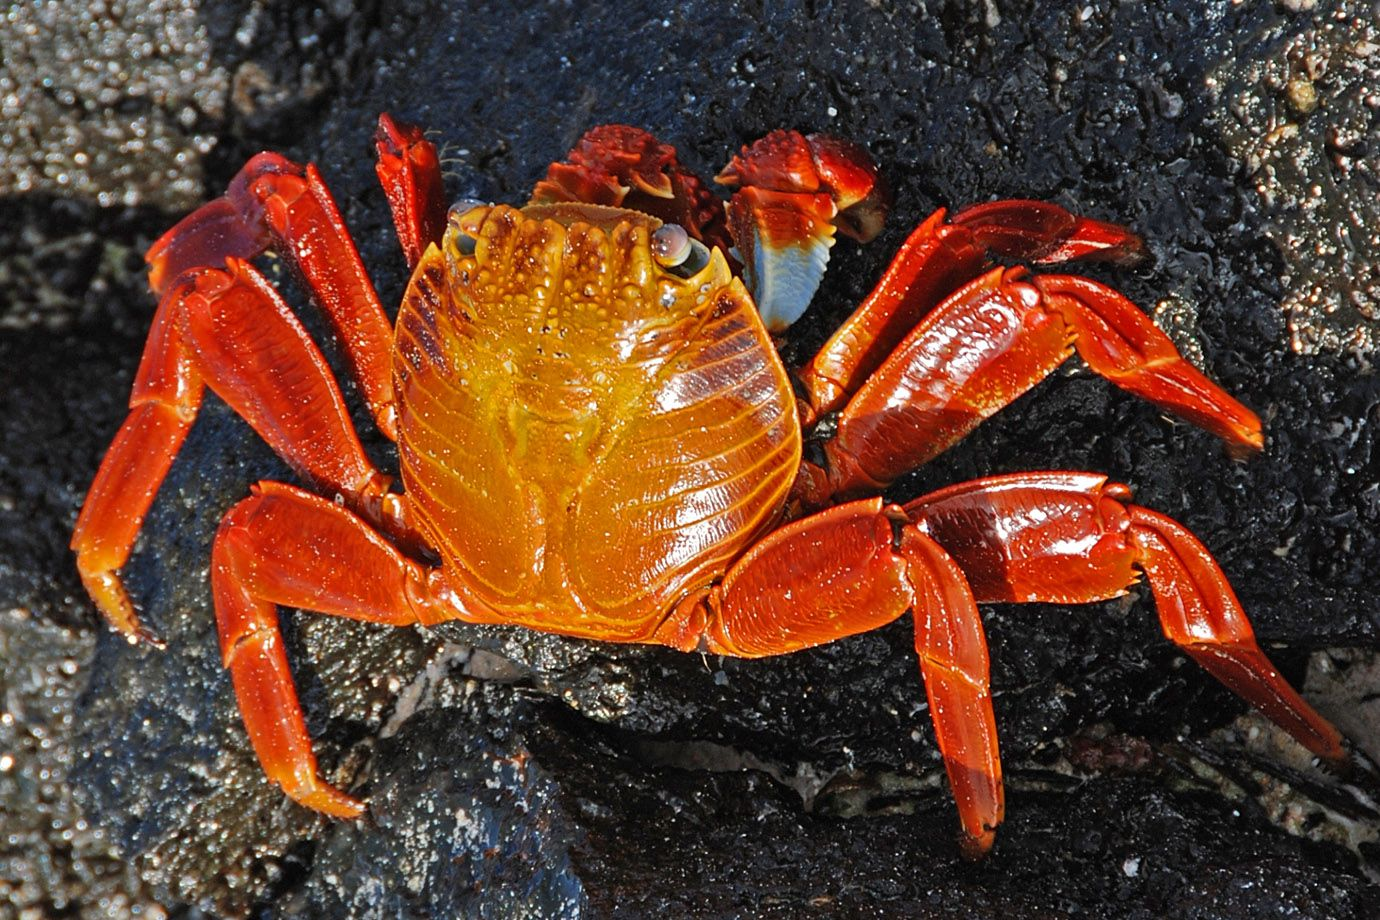 Red Rock Crab on Galapagos Islands